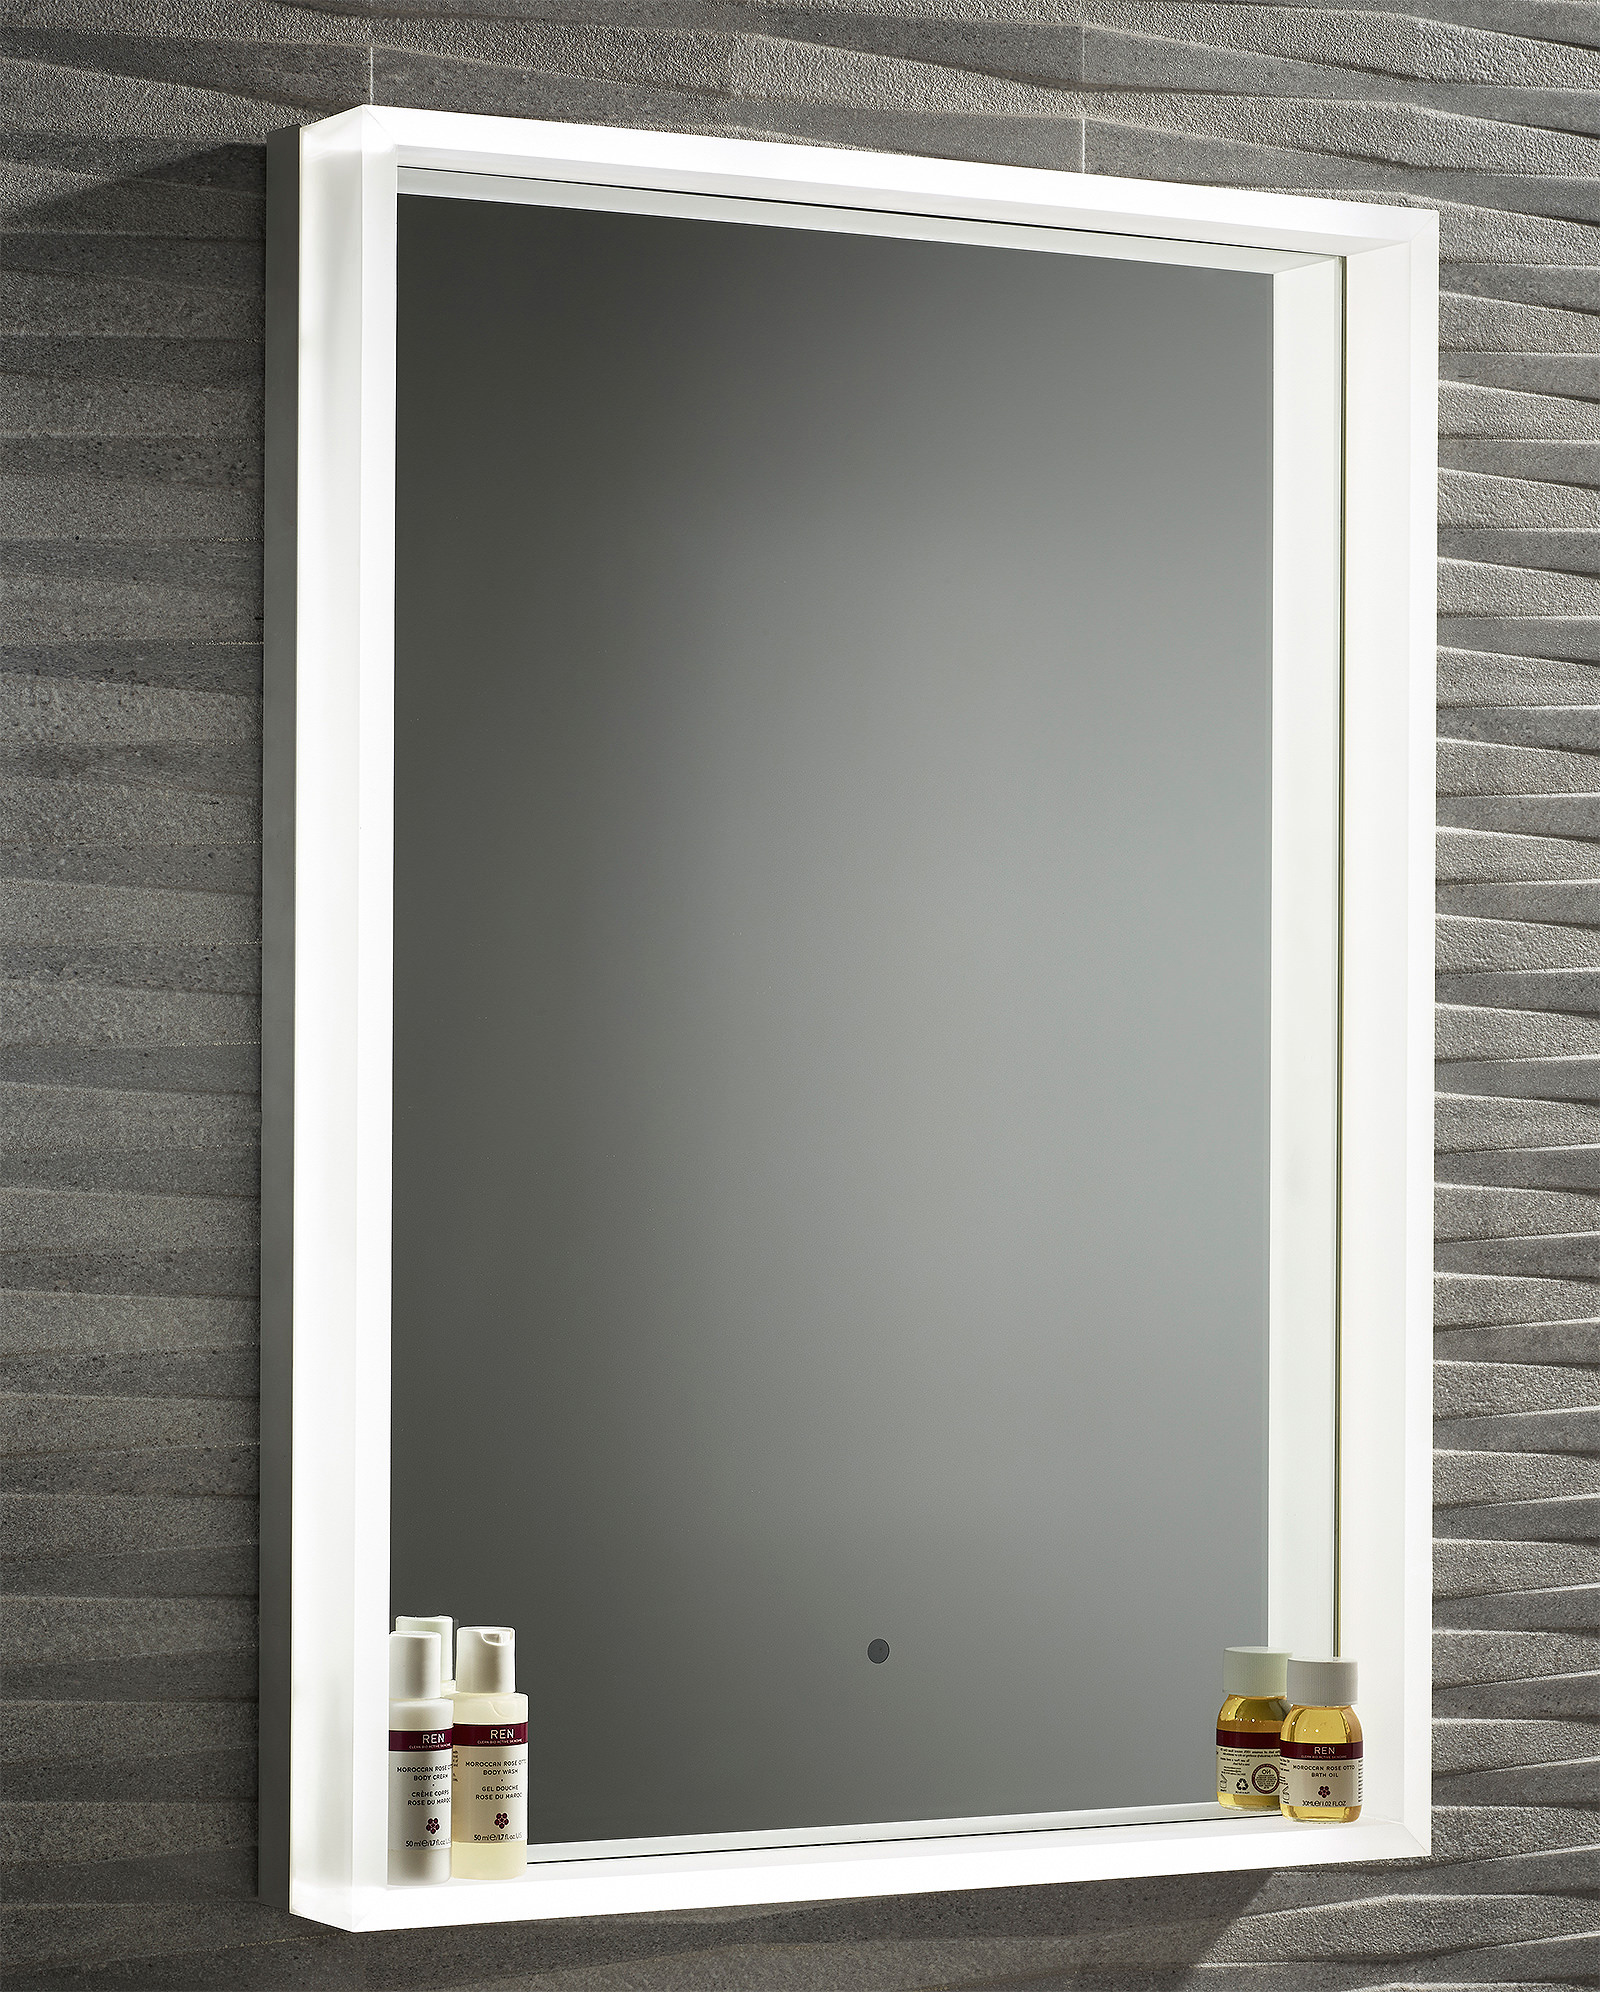 roper rhodes aura illuminated framed mirror 500 x 700mm chrome